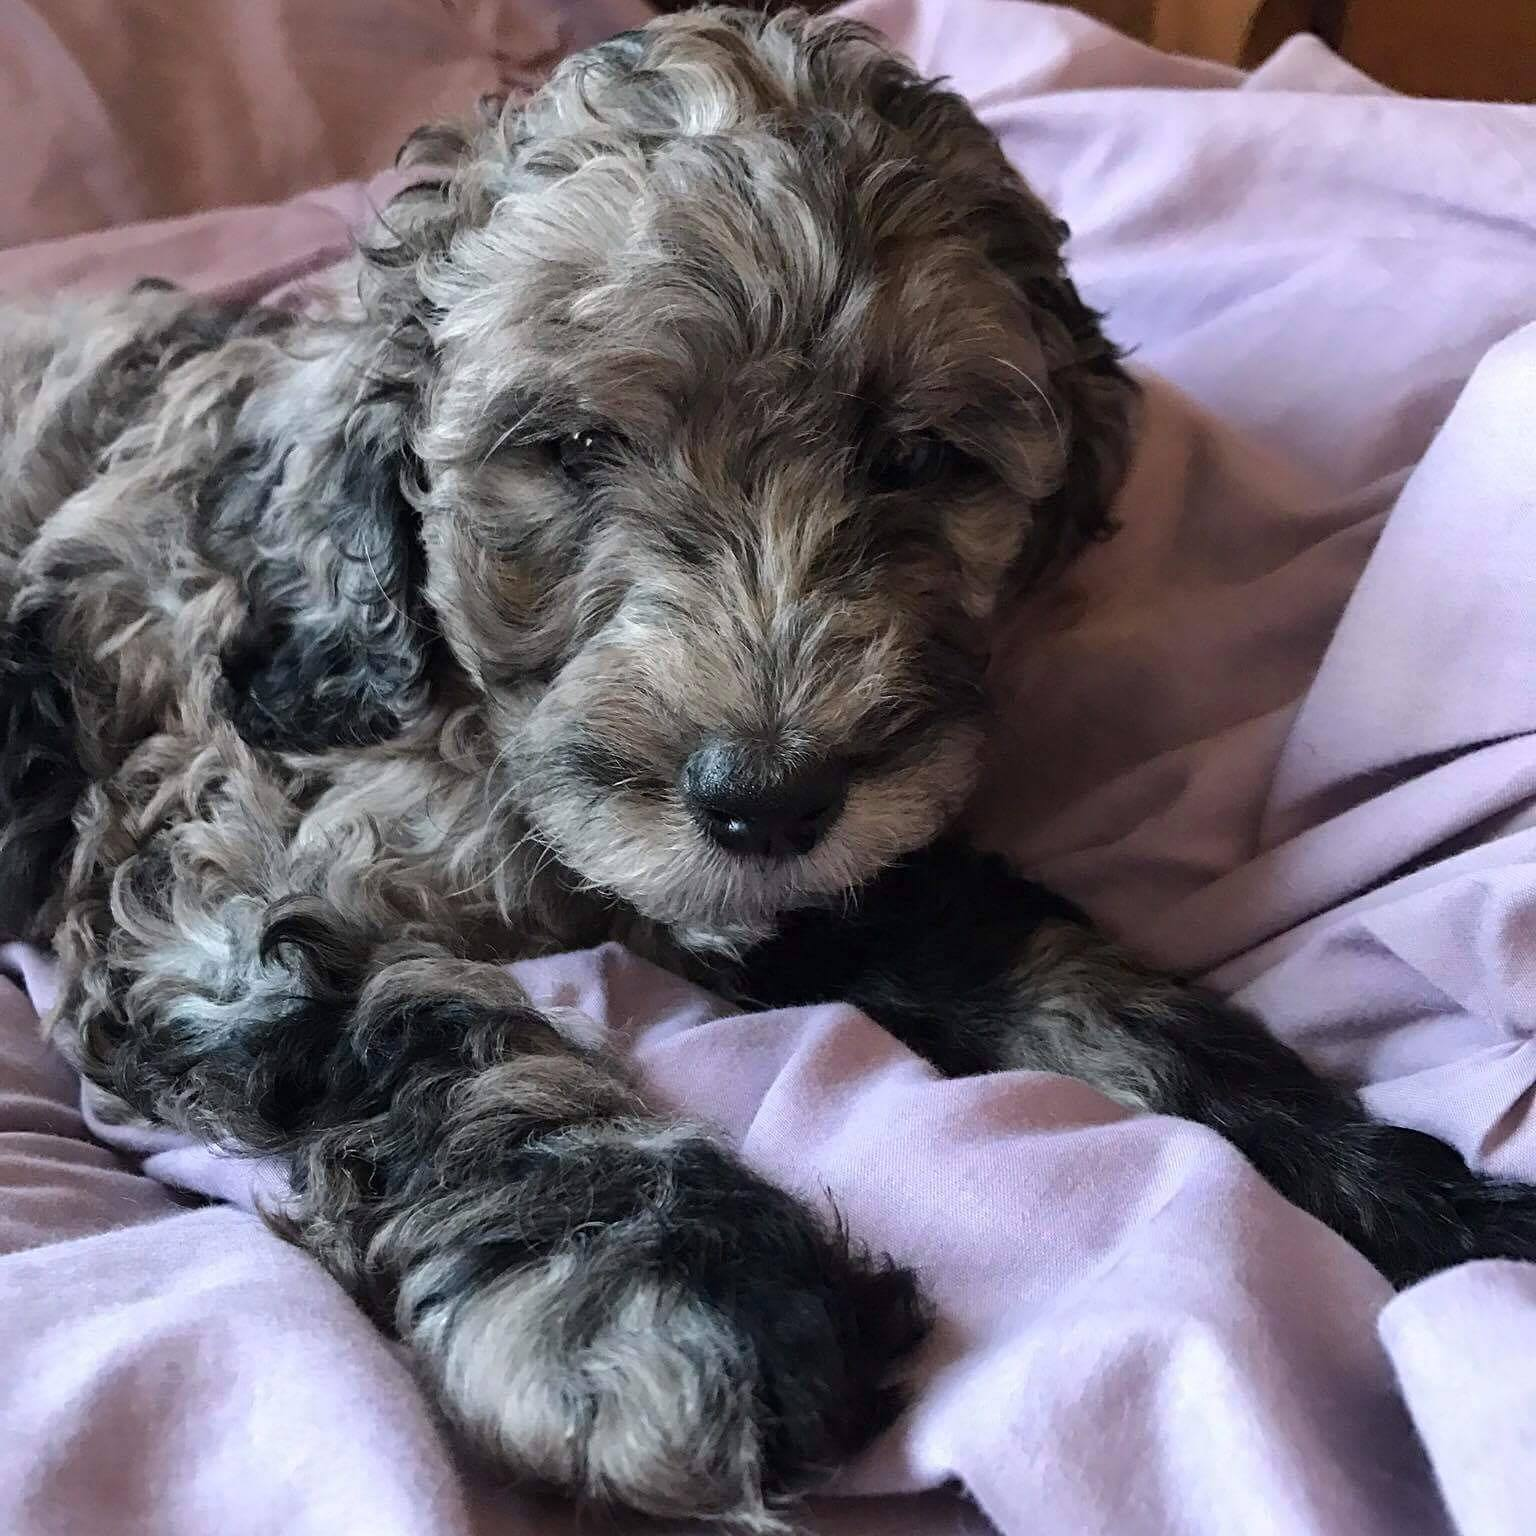 Deworming puppies with safeguard fenbendazole 10 100 mgml apollo as a puppy blue merle multigen labradoodle puppy deworming puppies nvjuhfo Image collections